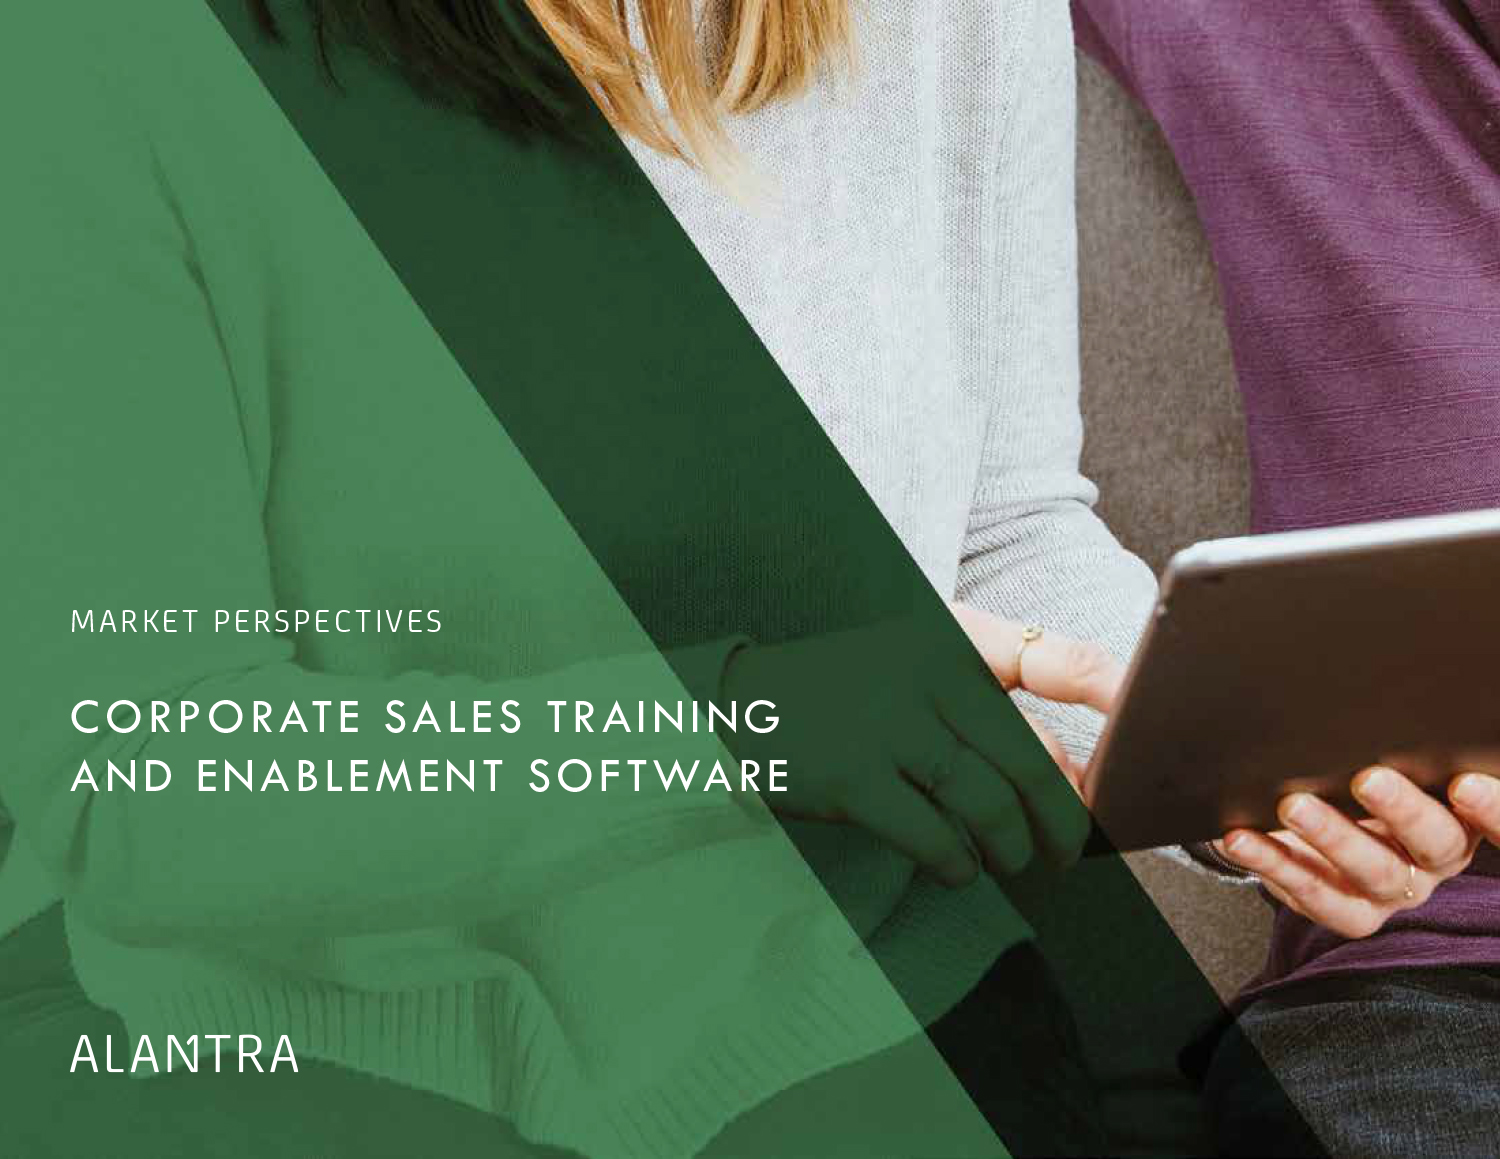 Corporate Sales Training Cover.jpg